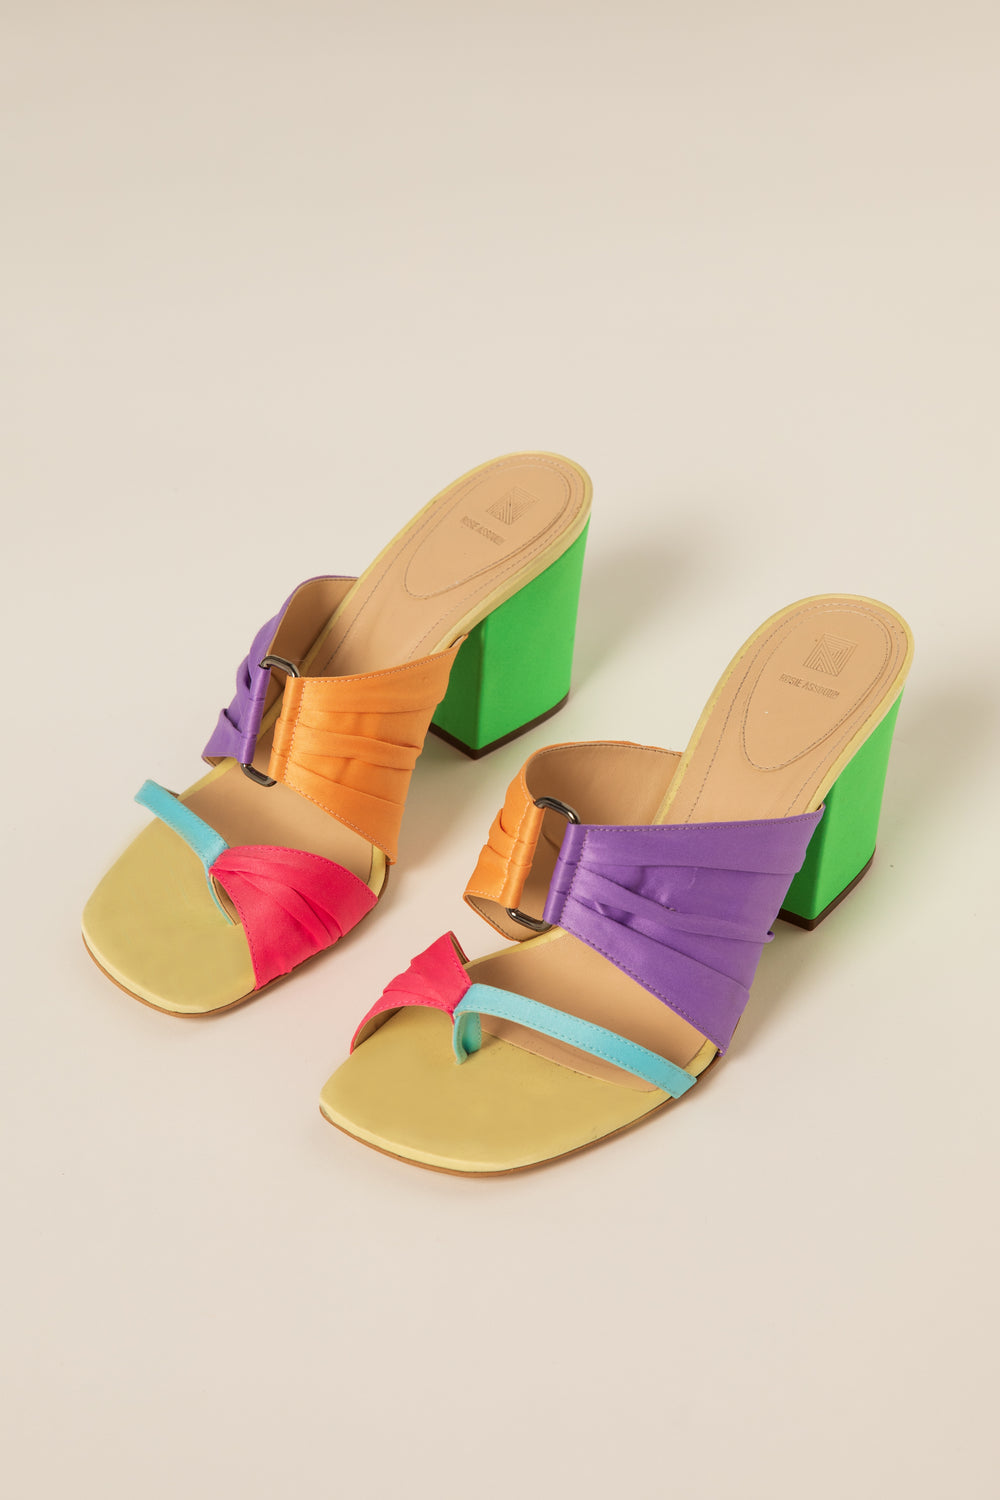 Rosie Assoulin Fall 2019 Pleated Funky Toe Mules. Chunky heeled mules. Toe loop. Open buckle detail. Rainbow. Sizes 35 - 41.